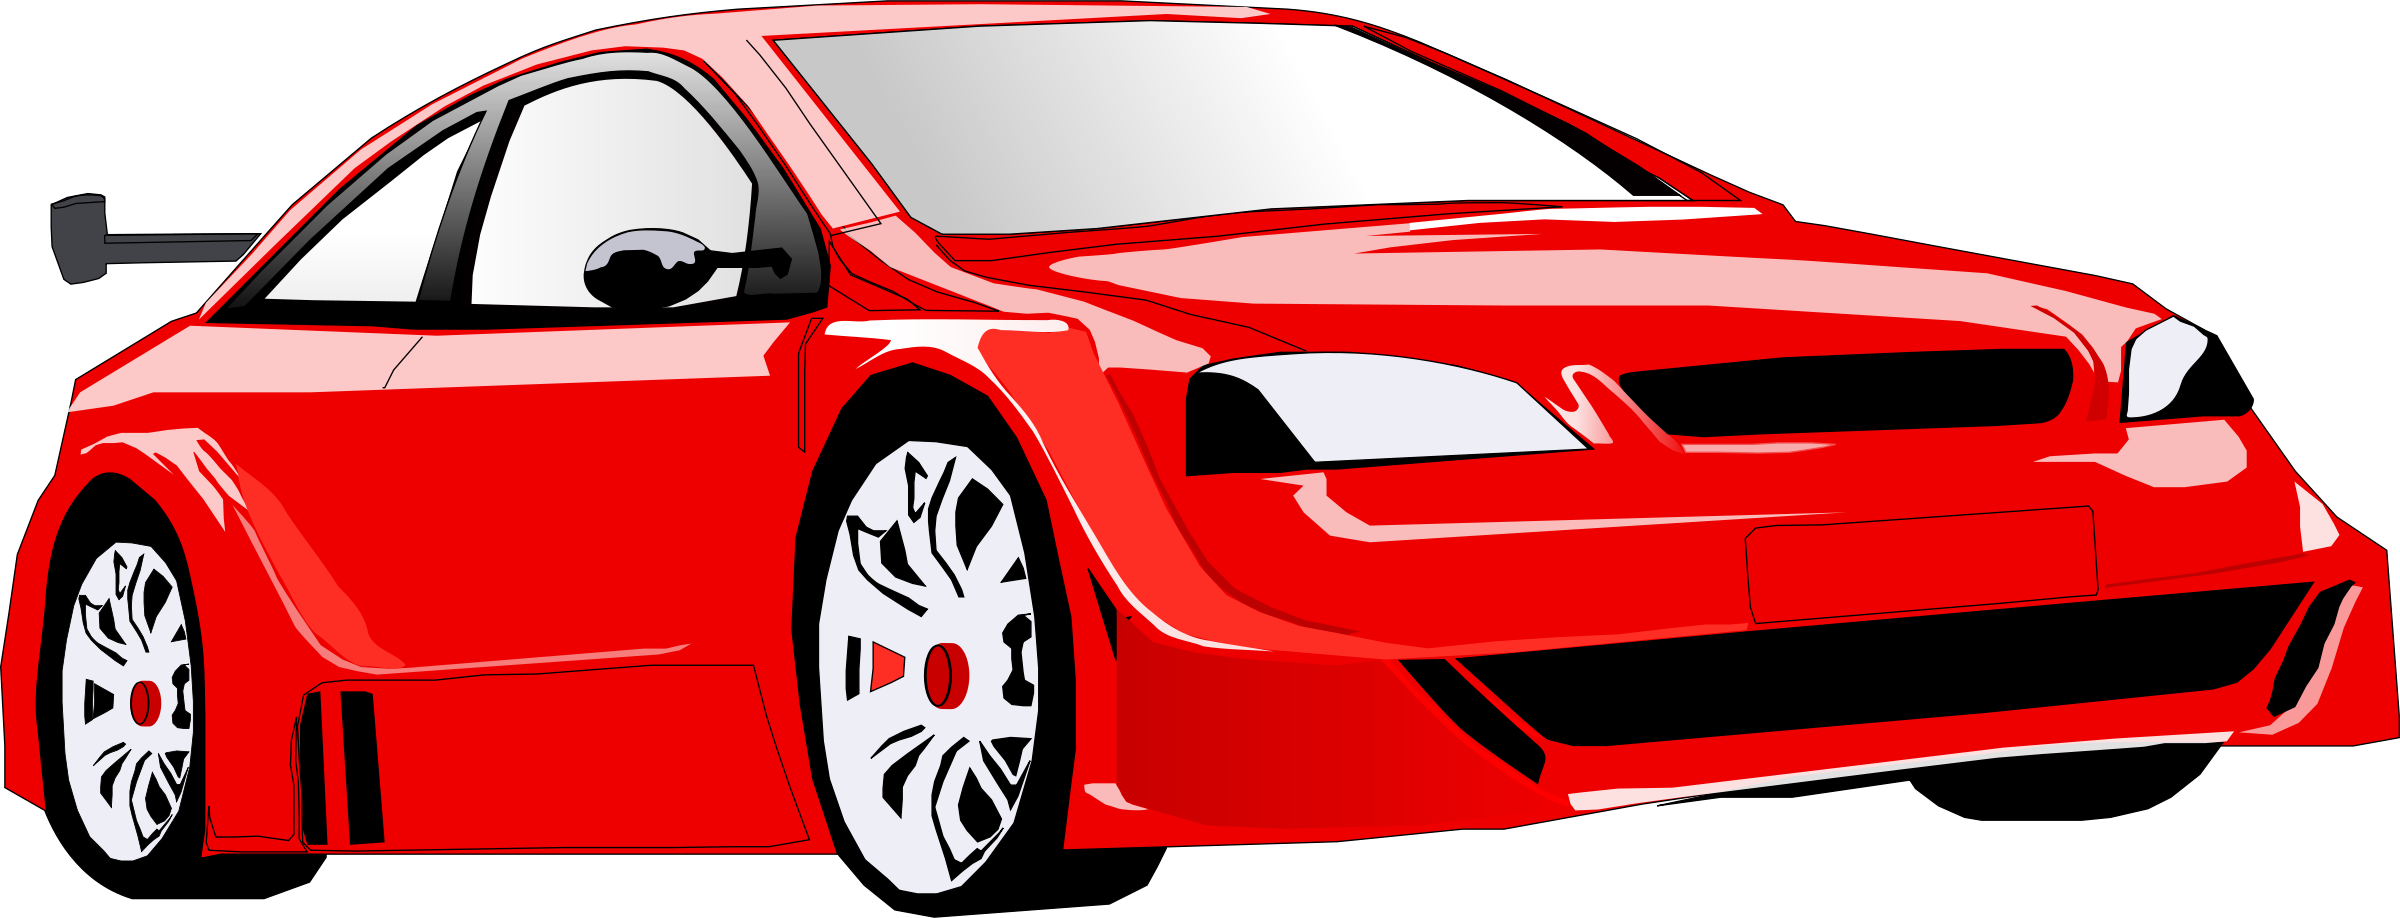 Cars car clipart free large images-Cars car clipart free large images-13